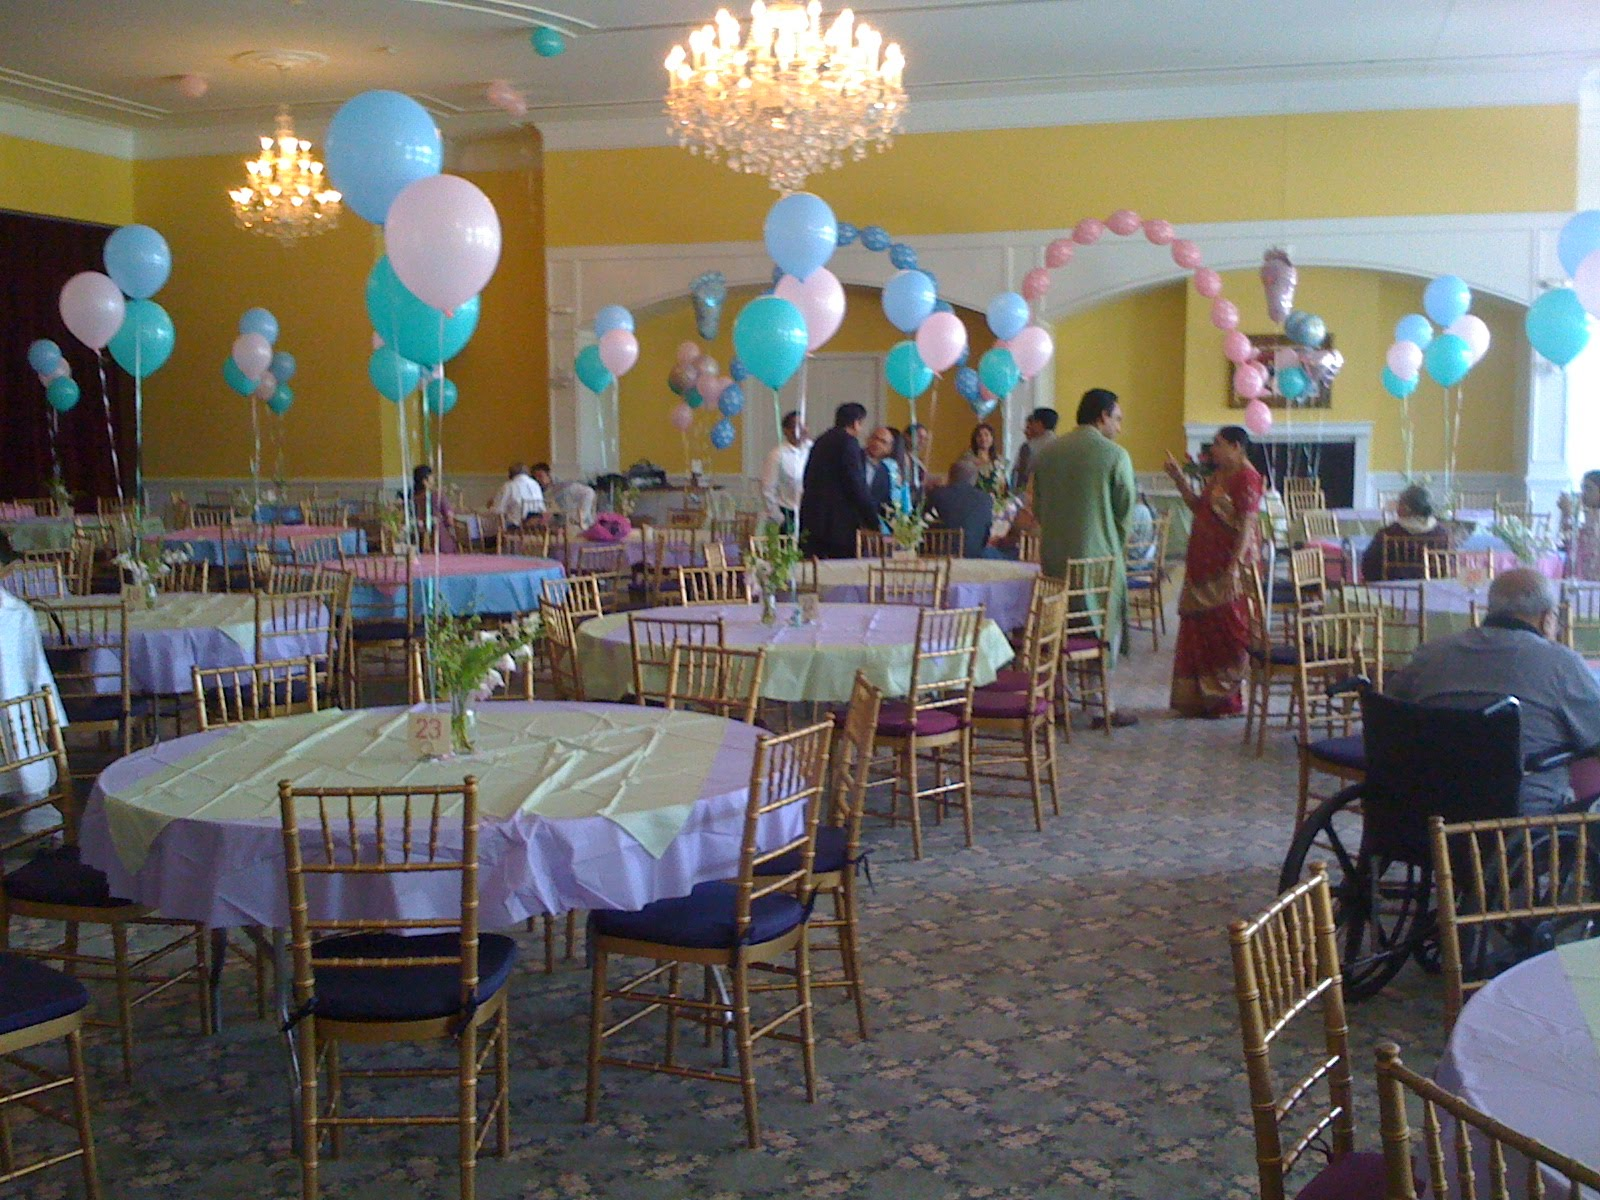 Foxchase manor august 22 2010 foxchase north ballrooms for Baby shower party hall decoration ideas